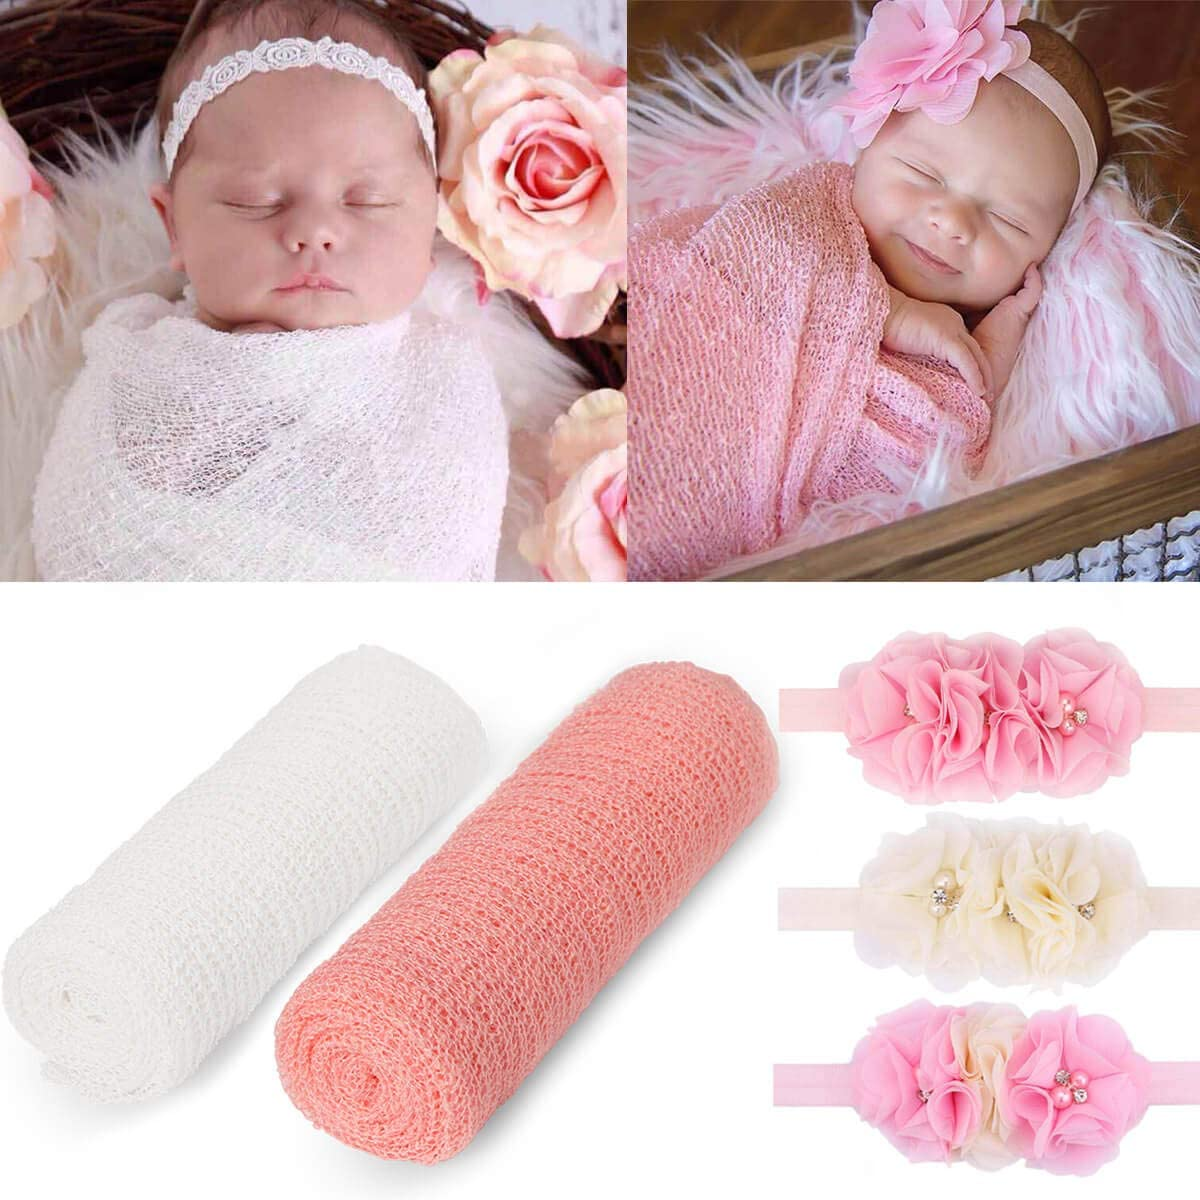 12 Pieces Newborn Baby Photography Props Long Ripple Stretch Wrap DIY Girl  Boy Photo Props Blanket with Headbands White + Pink